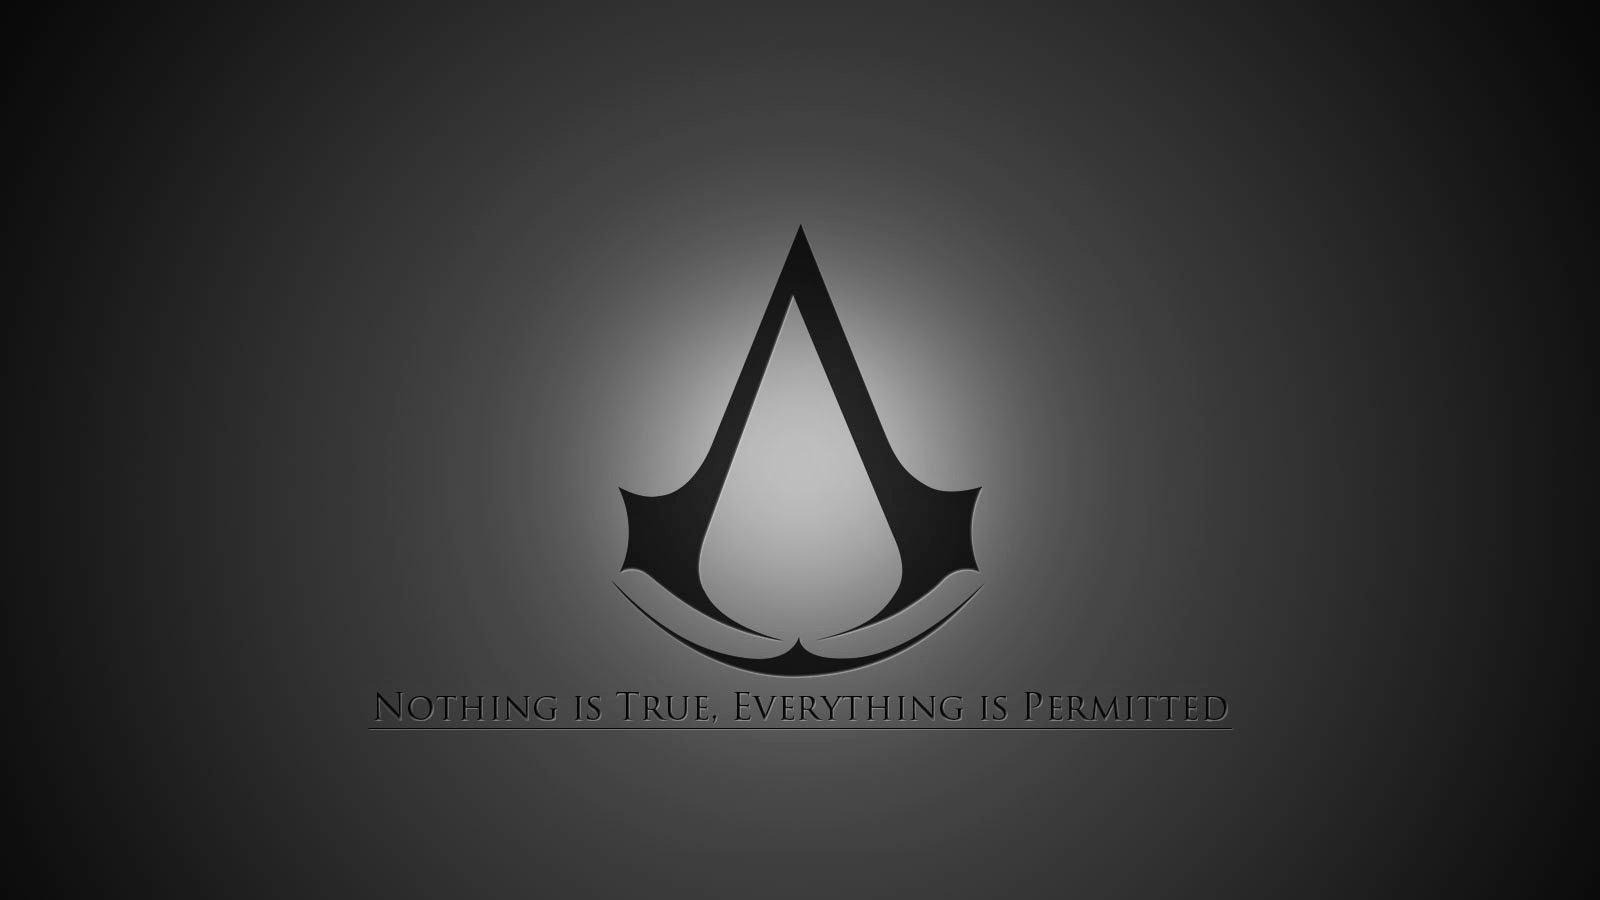 Full Hd Desktop Wallpapers Assassin S Creed Wallpaper Logo